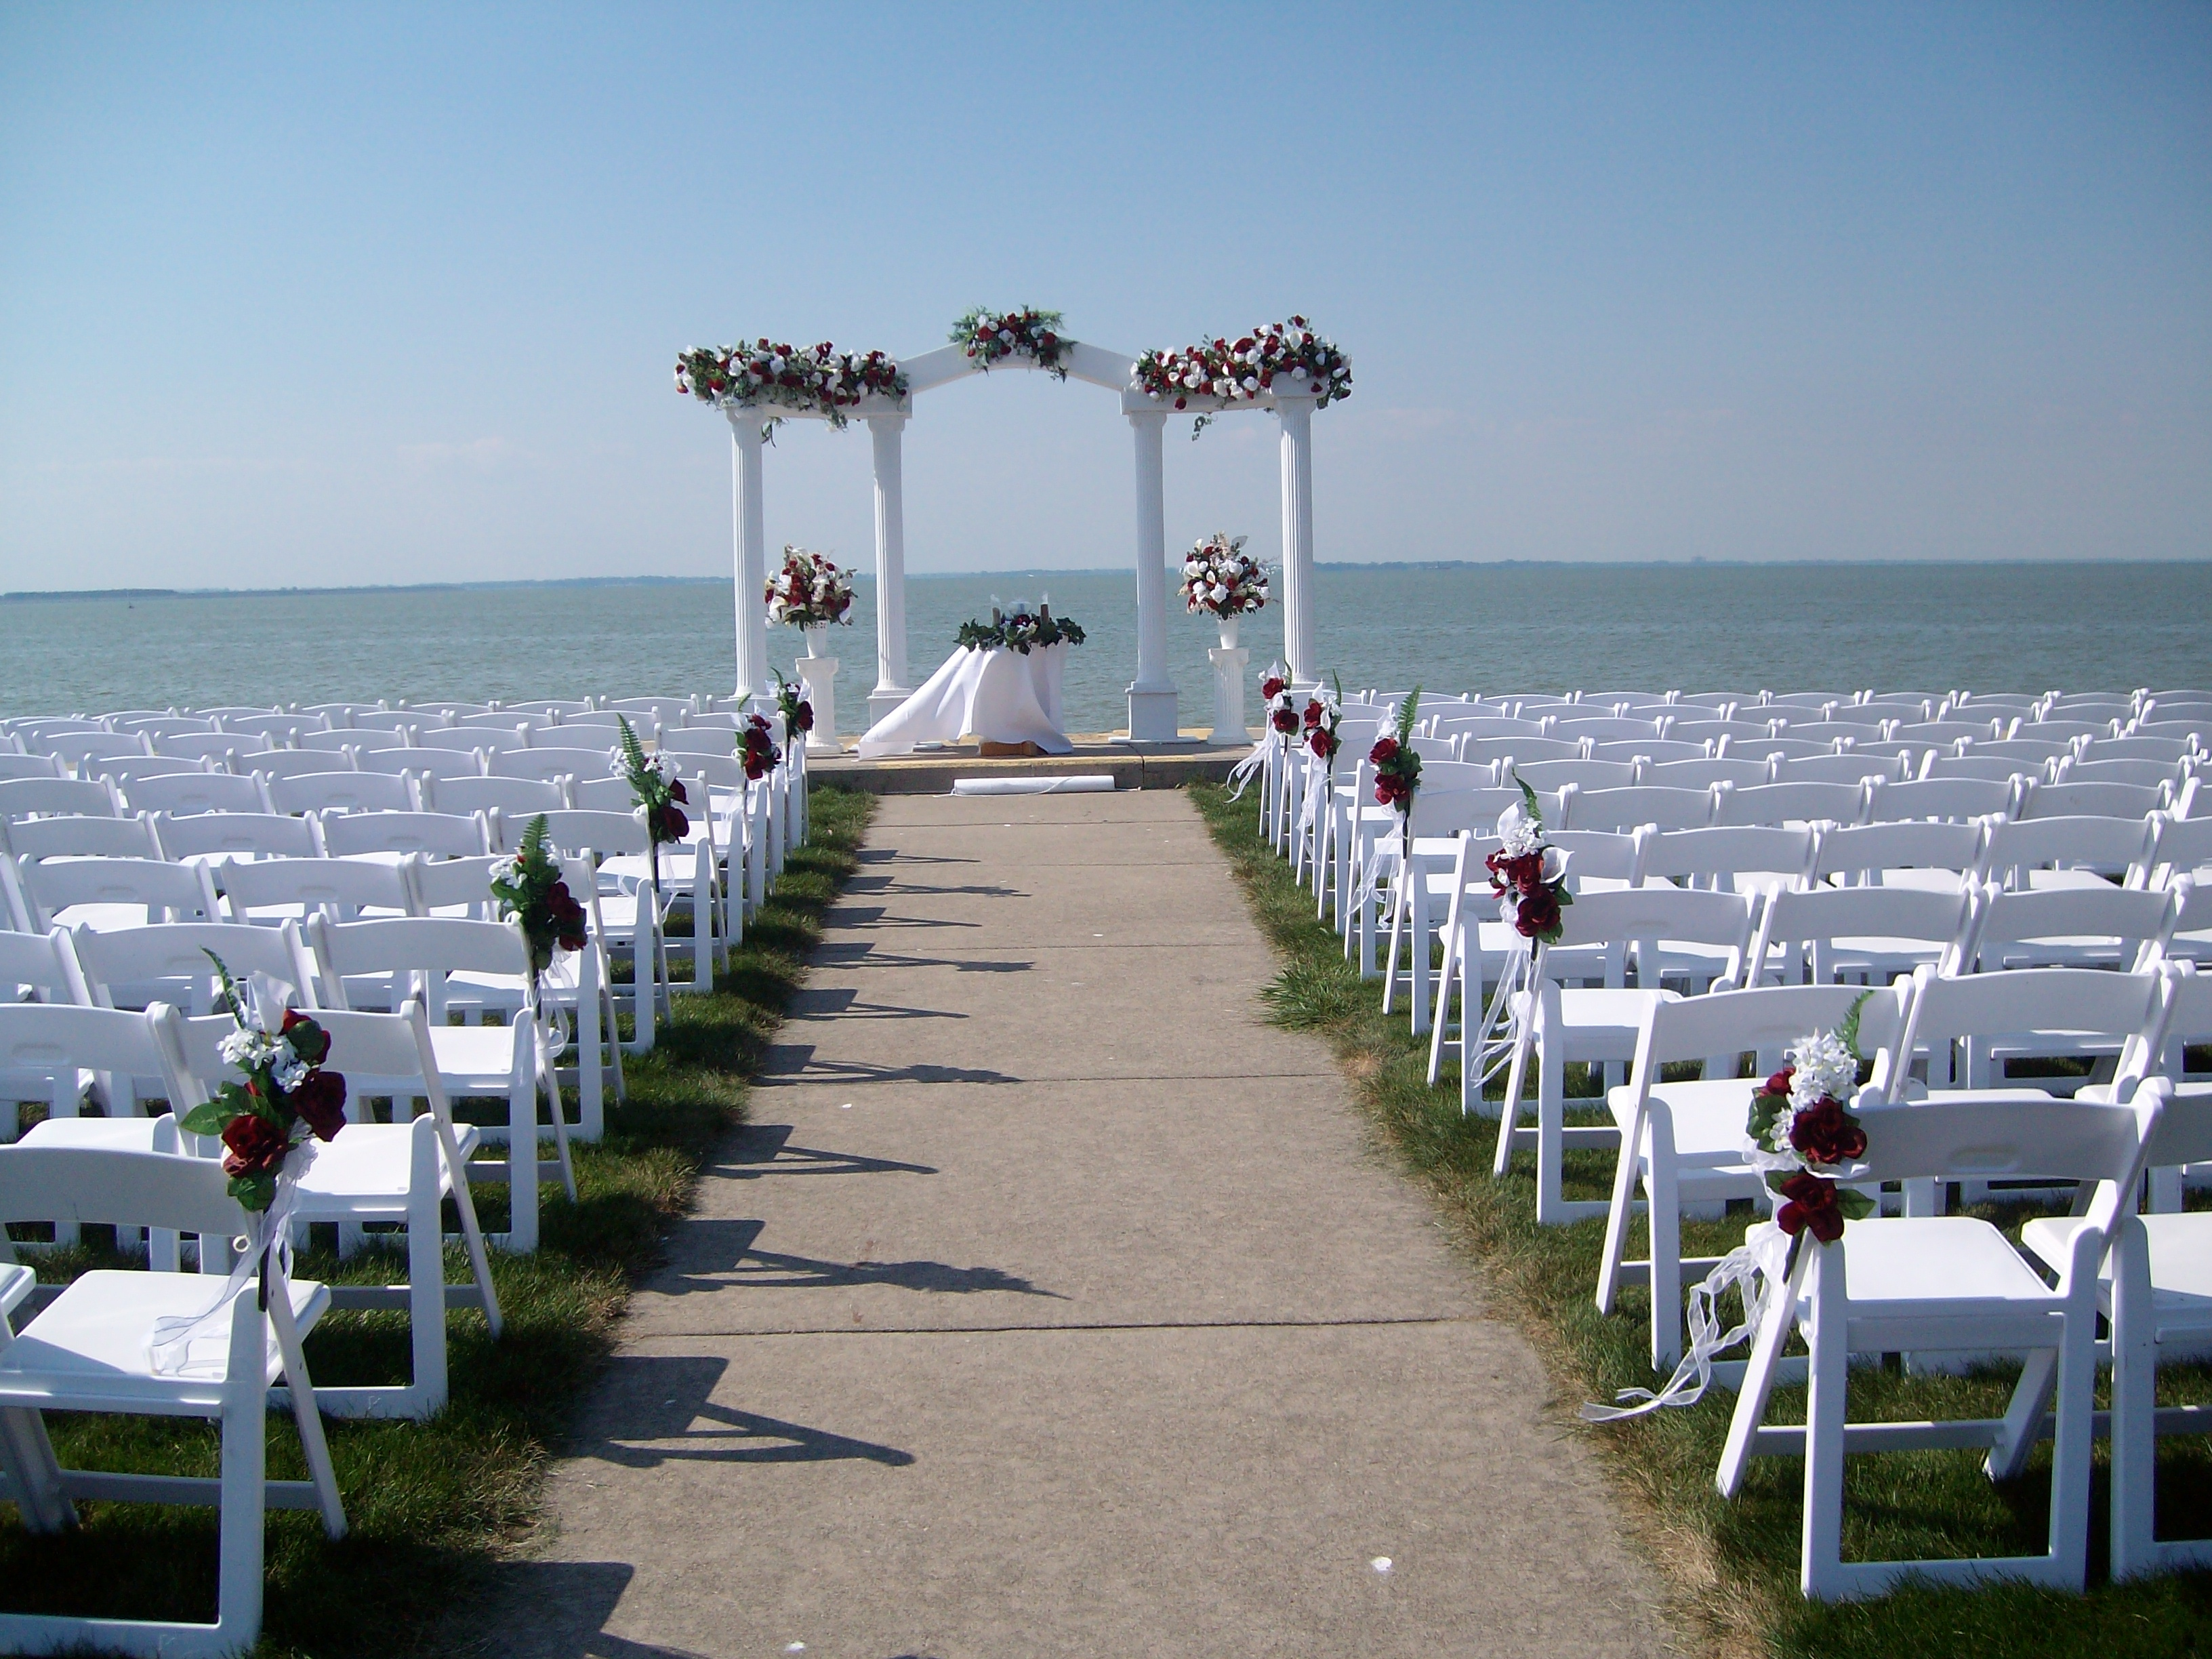 Ohio state park lodges offer an array of destination wedding options sanyo digital camera junglespirit Images